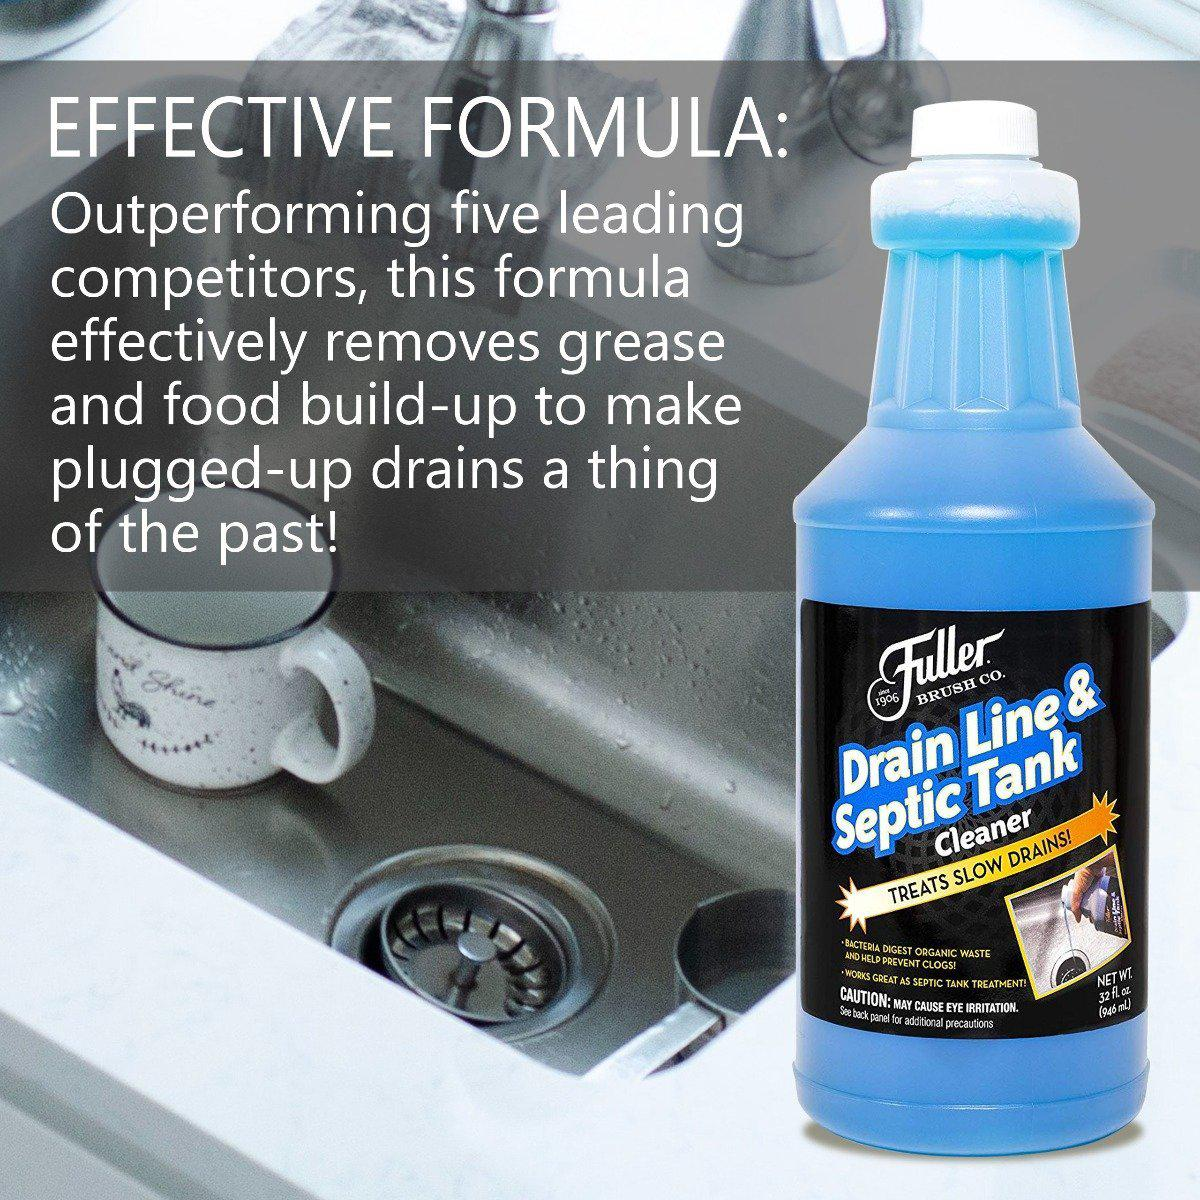 Drain Line & Septic Tank Cleaner - Septic System Treatment & Slow Running Drain Solution-Cleaning Agents-Fuller Brush Company